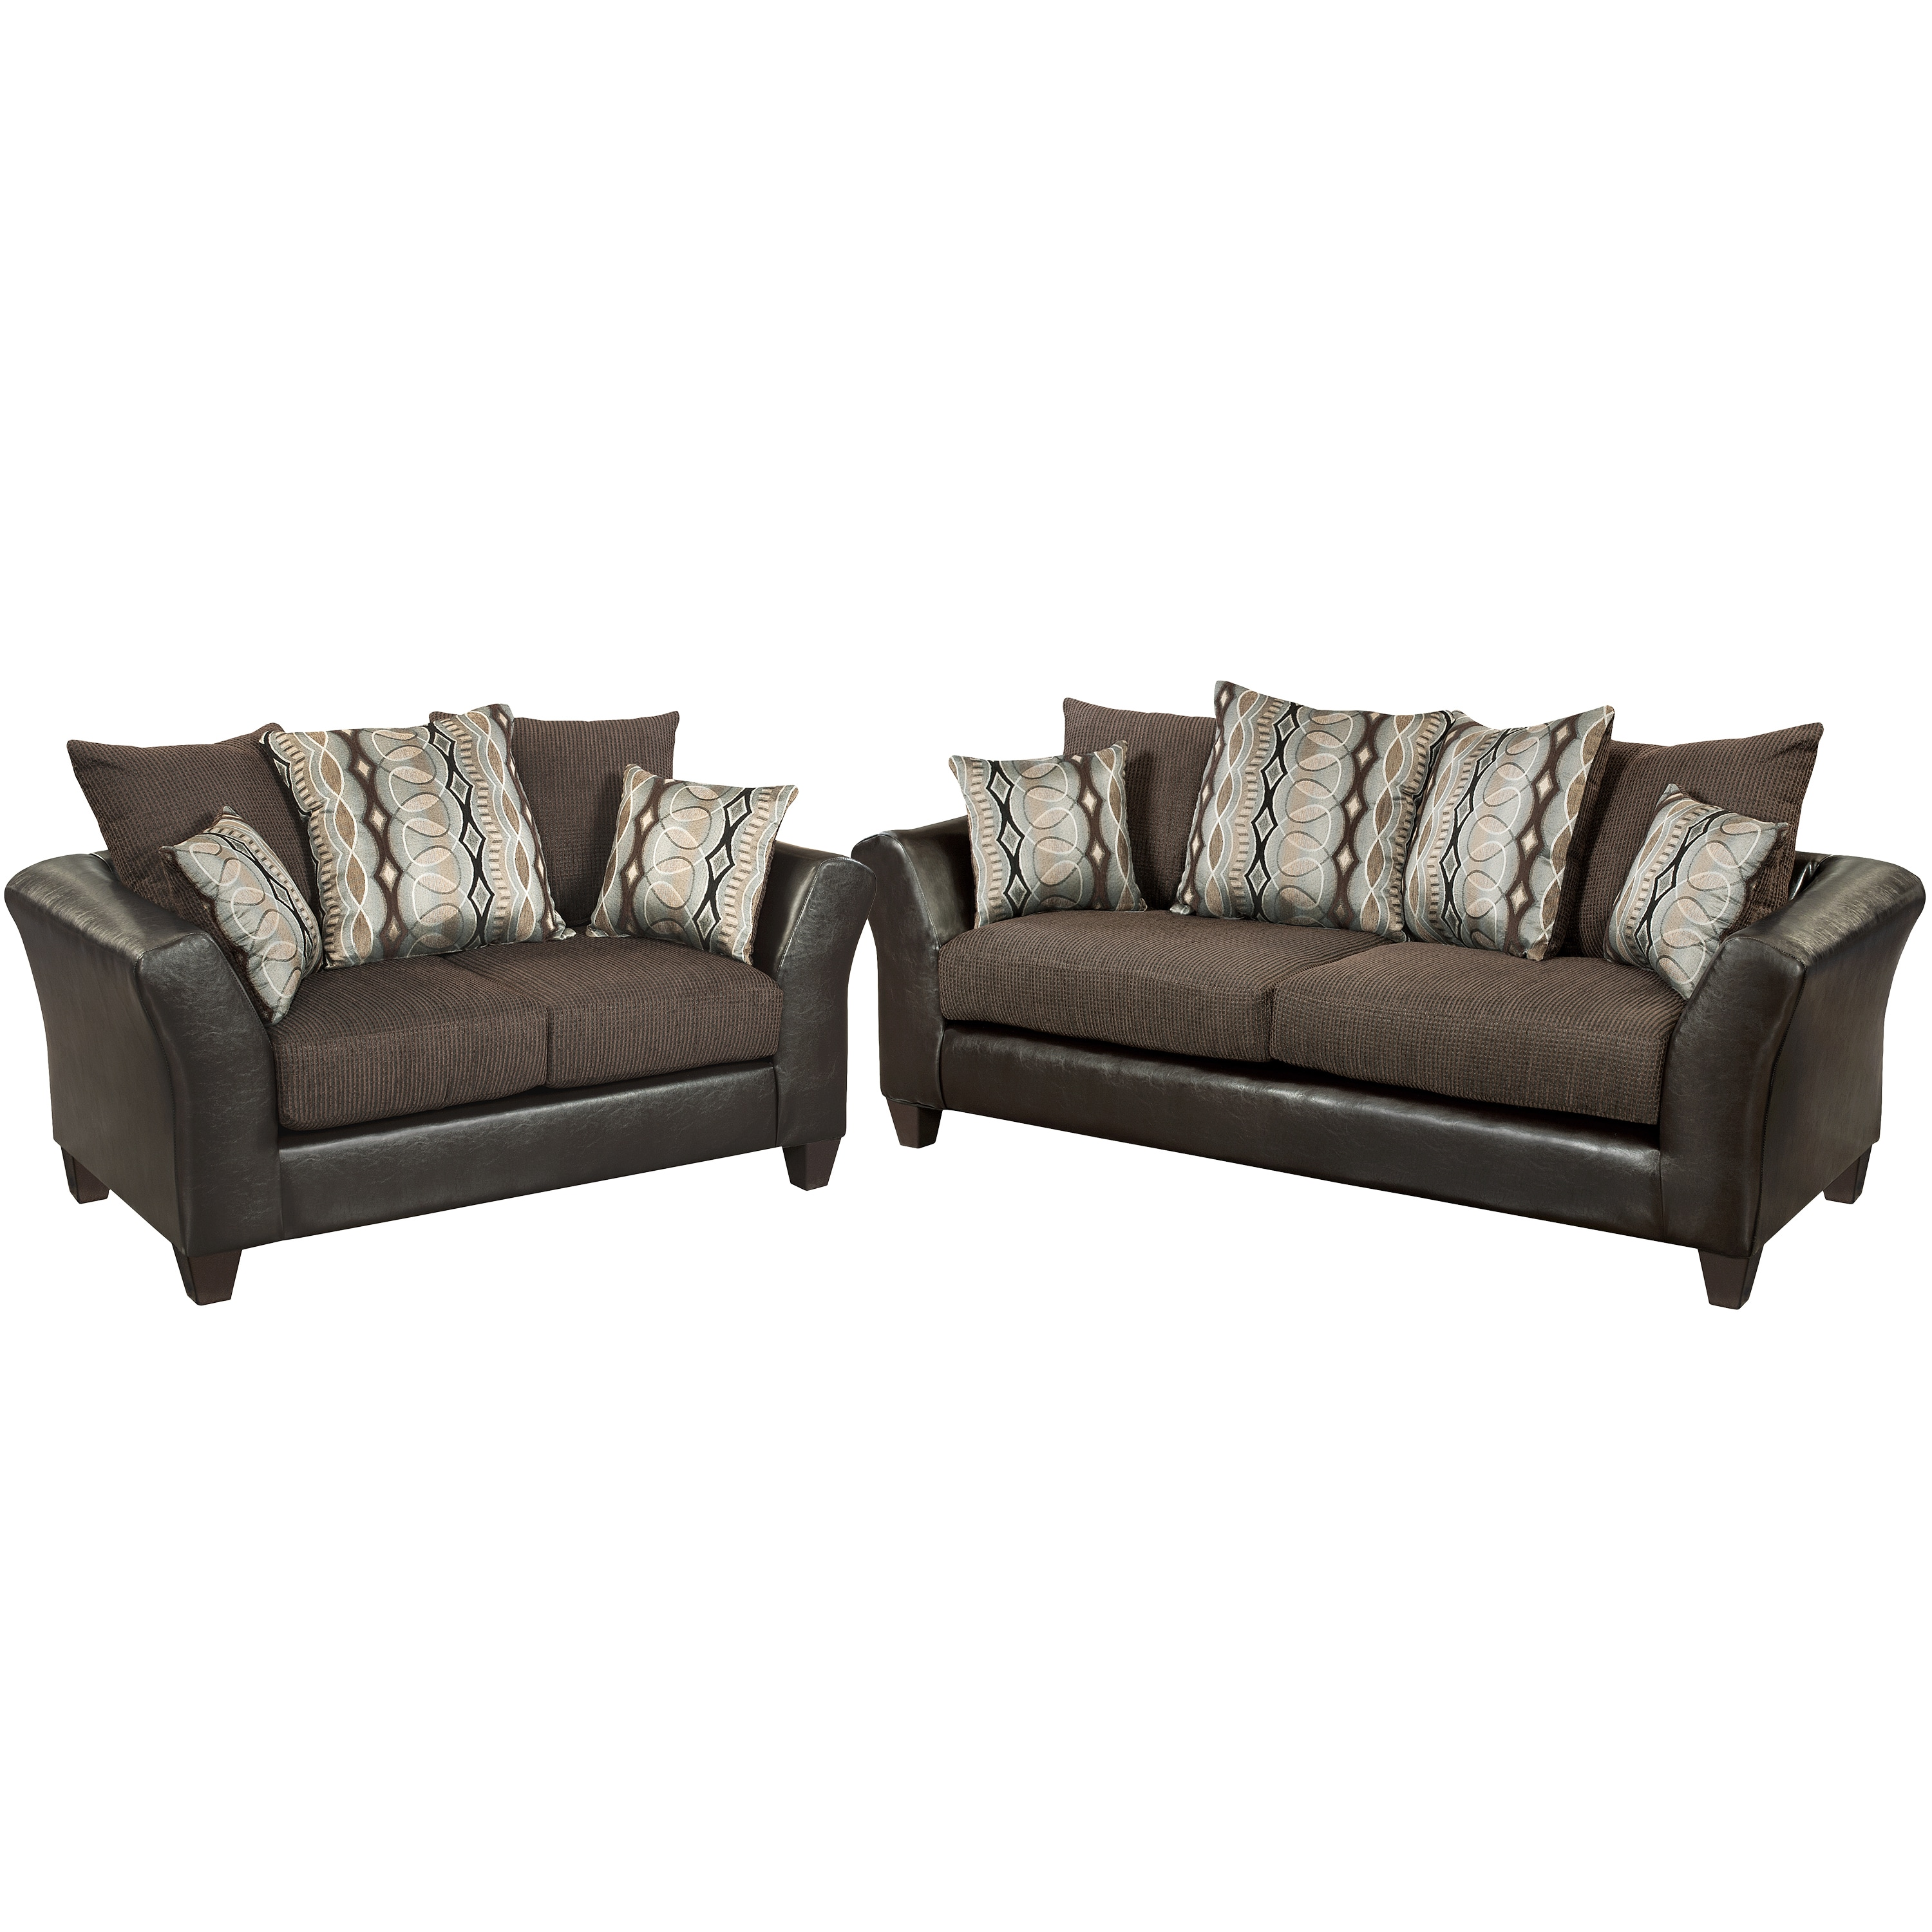 Riverstone Rip Sable Chenille Living Room Set Free Shipping Today 11324631